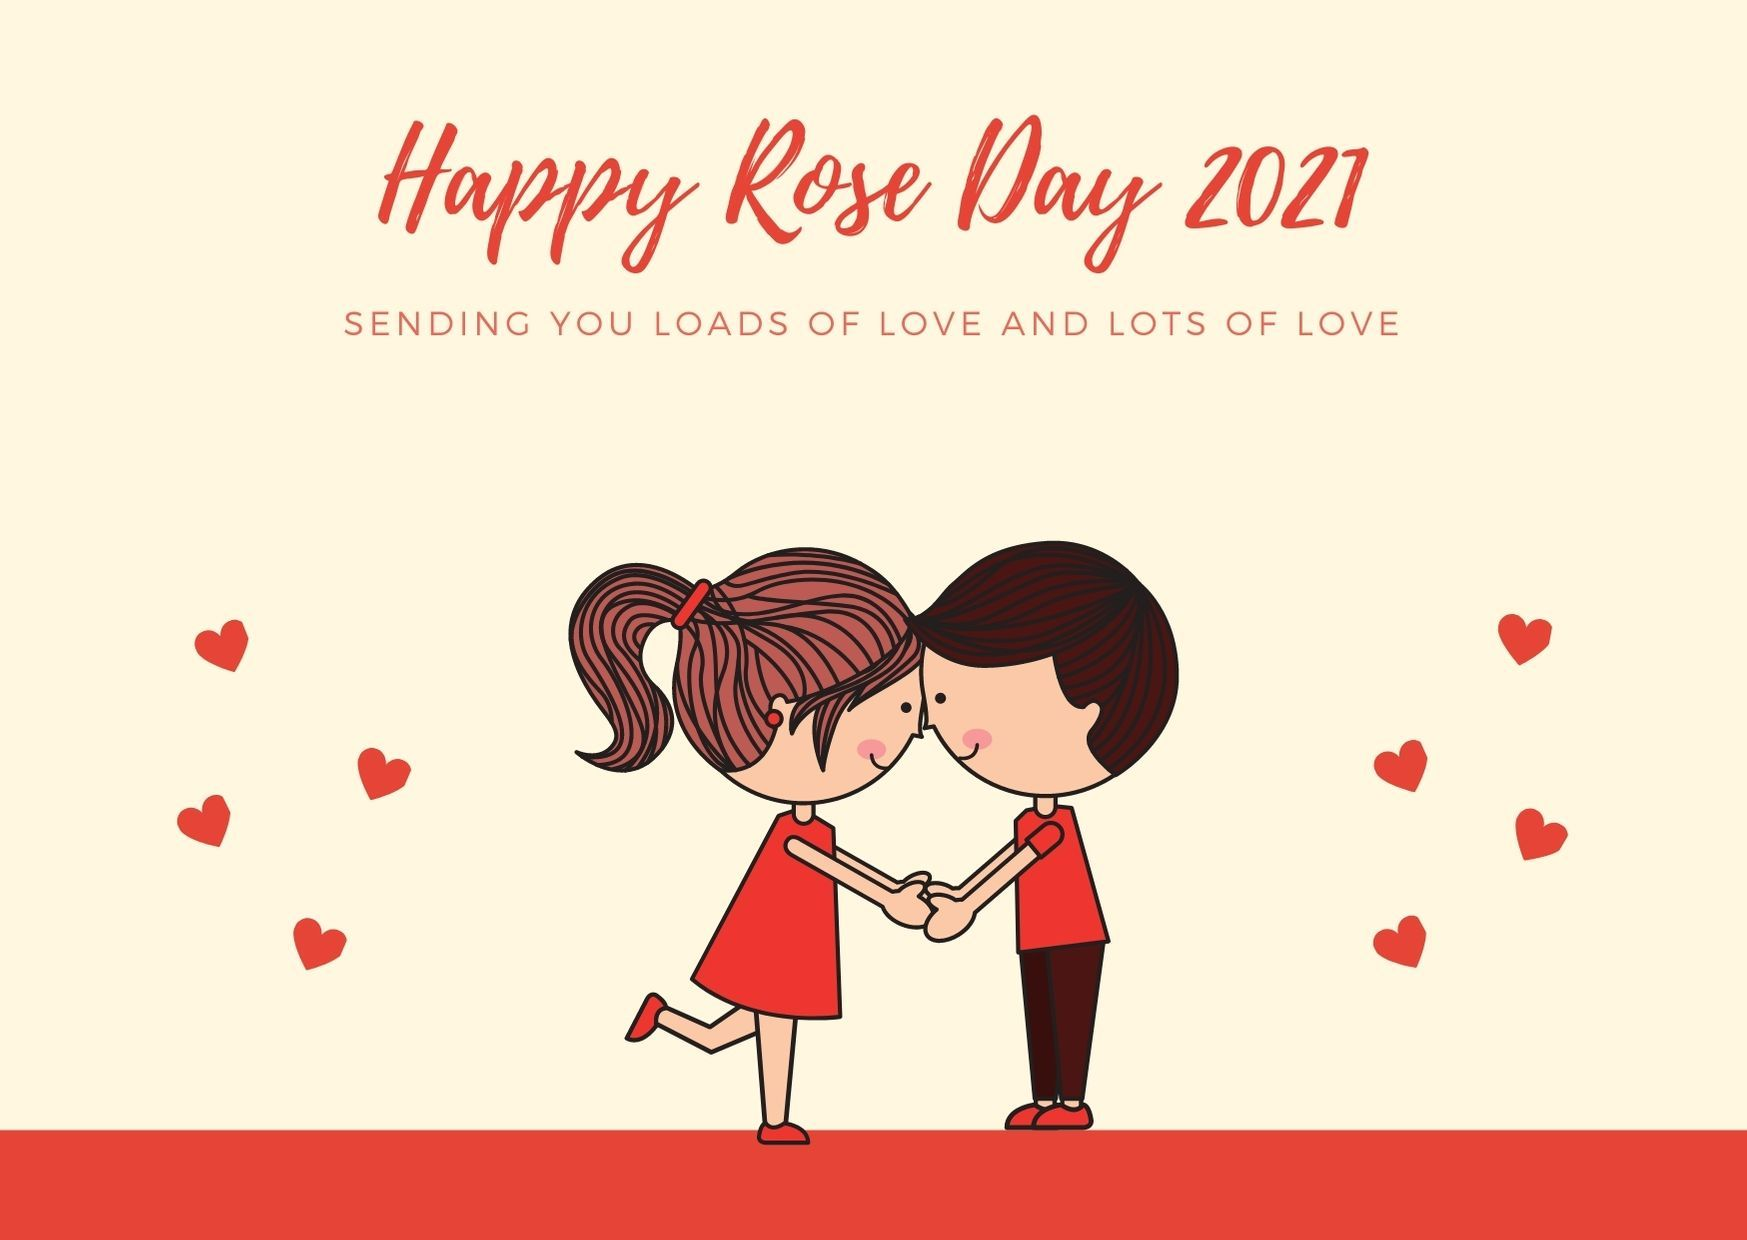 Happy Rose Day 2021 Messages For Boyfriend Valentine Day Week List Happy Valentines Day Valentine Day Week Images photos love rose day 2021